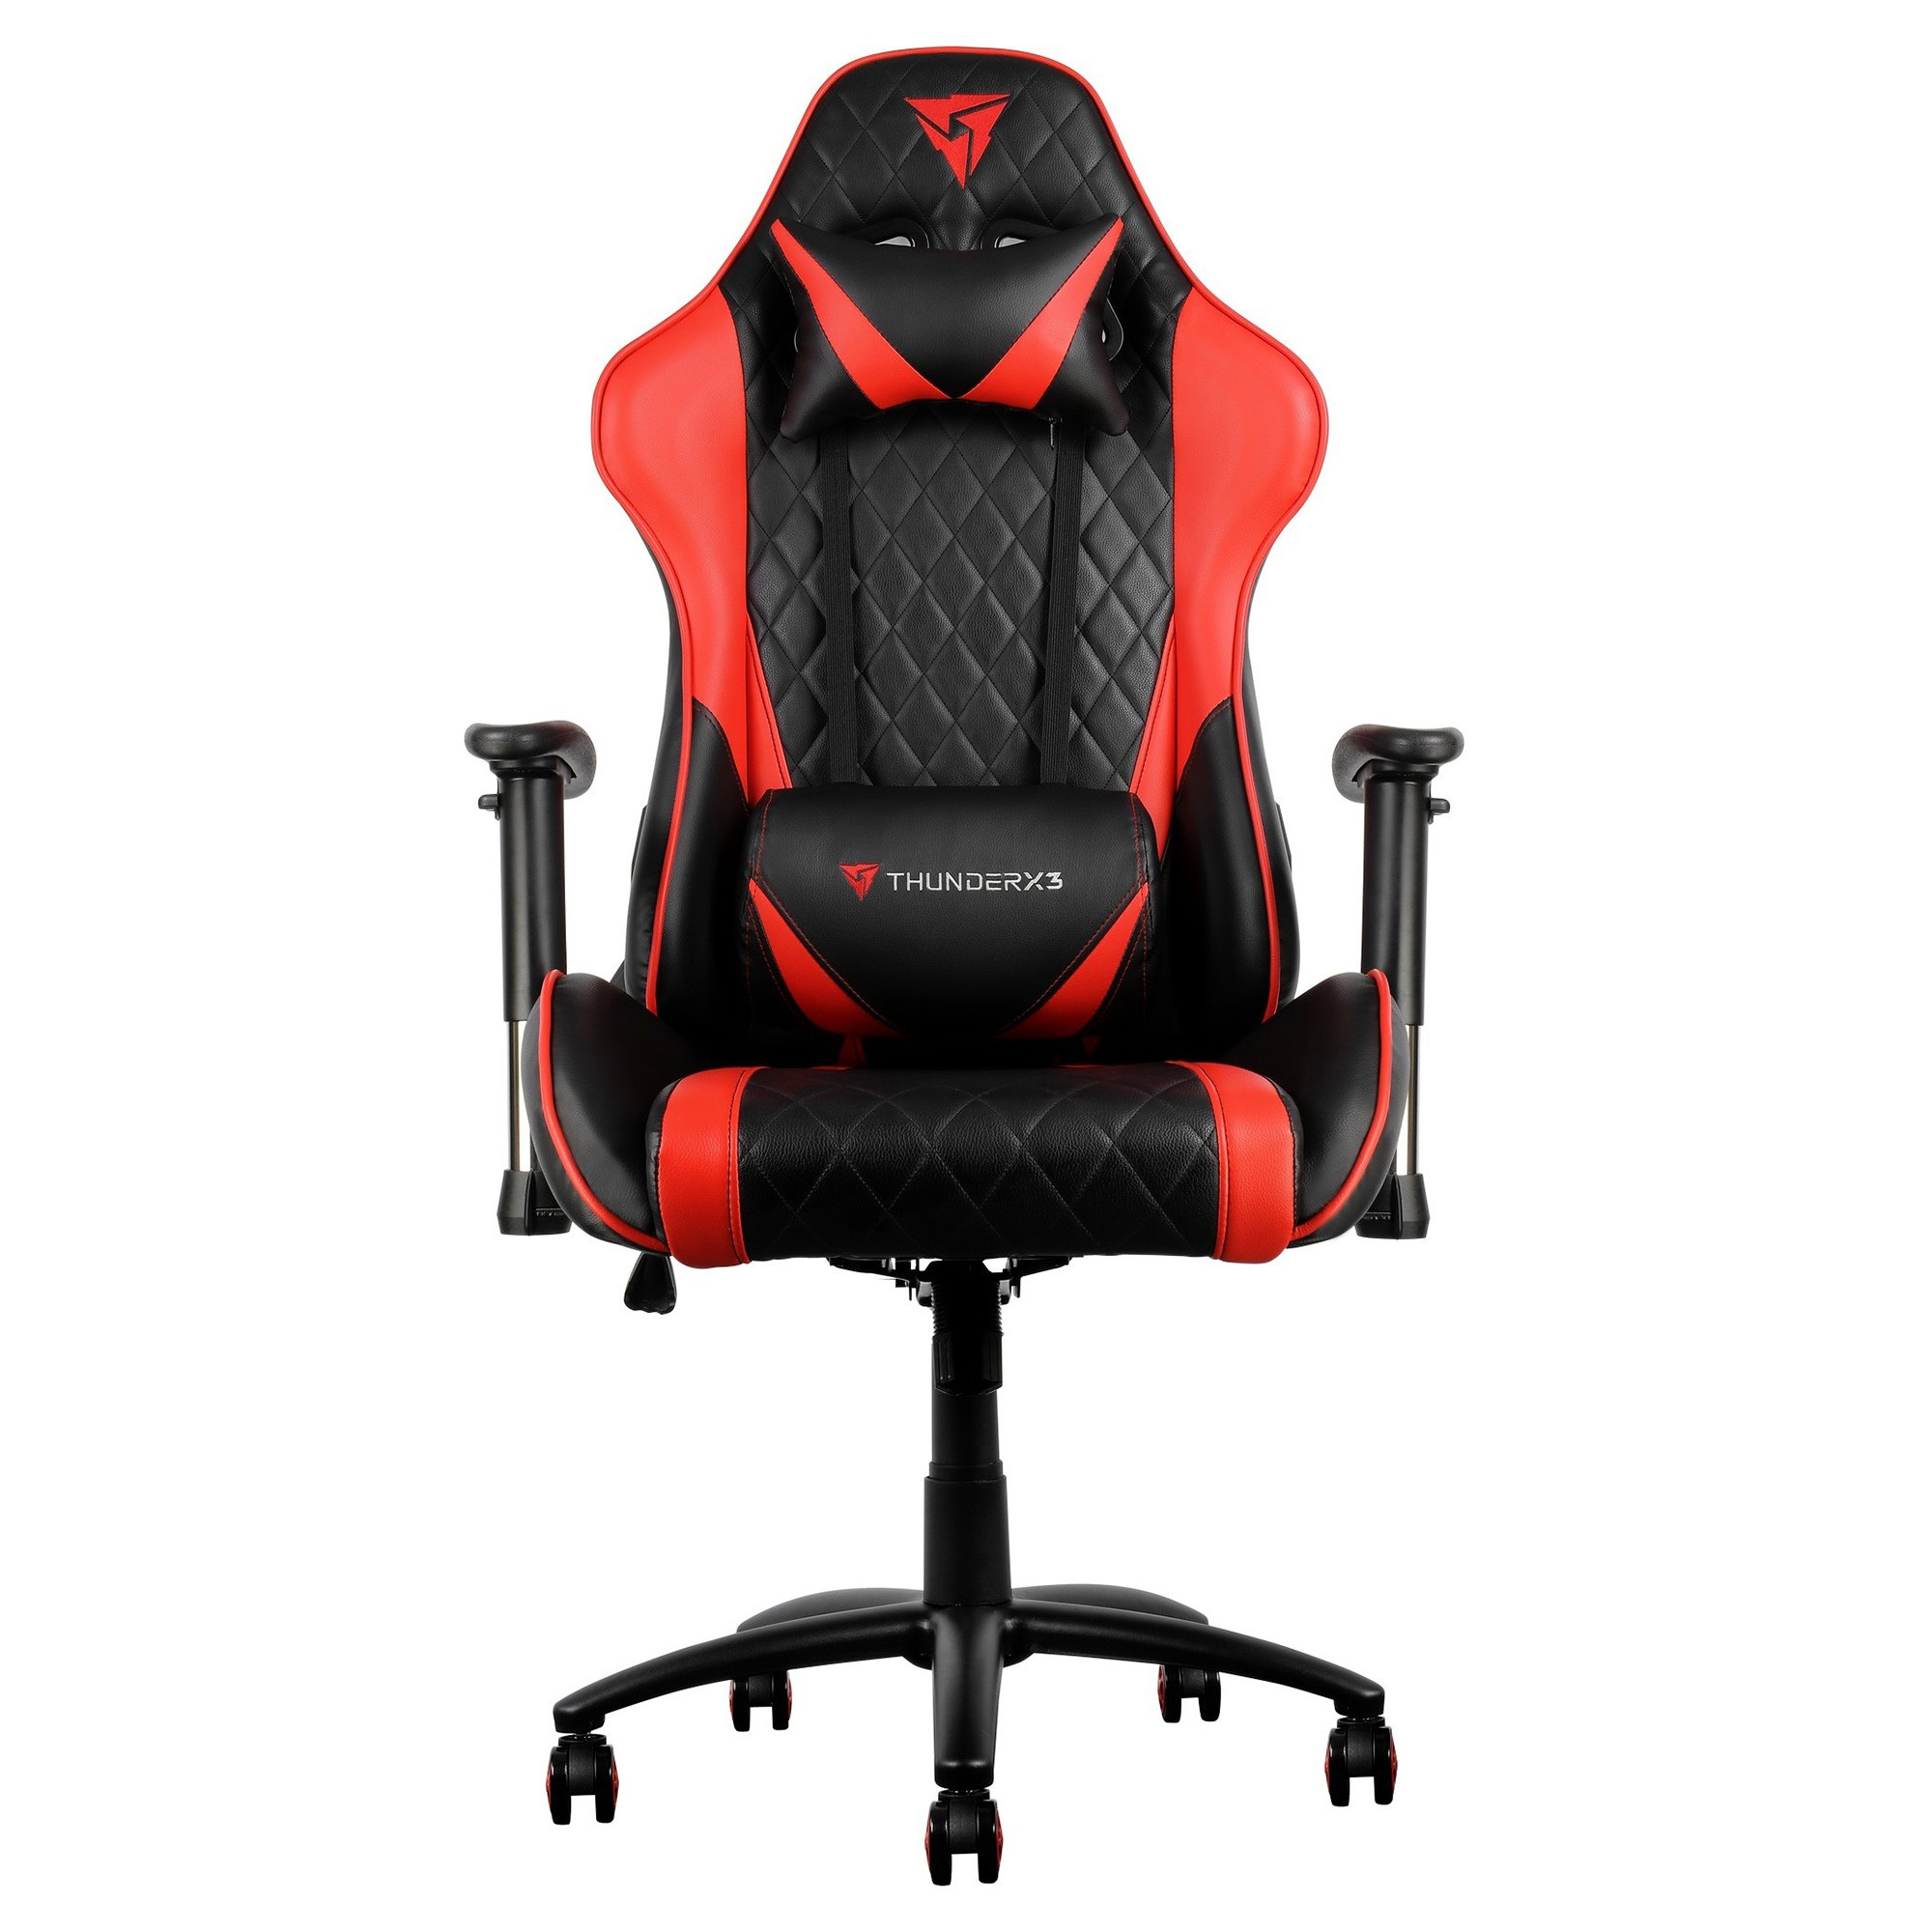 ThunderX3 TGC15 Gaming Chair, Black / Red